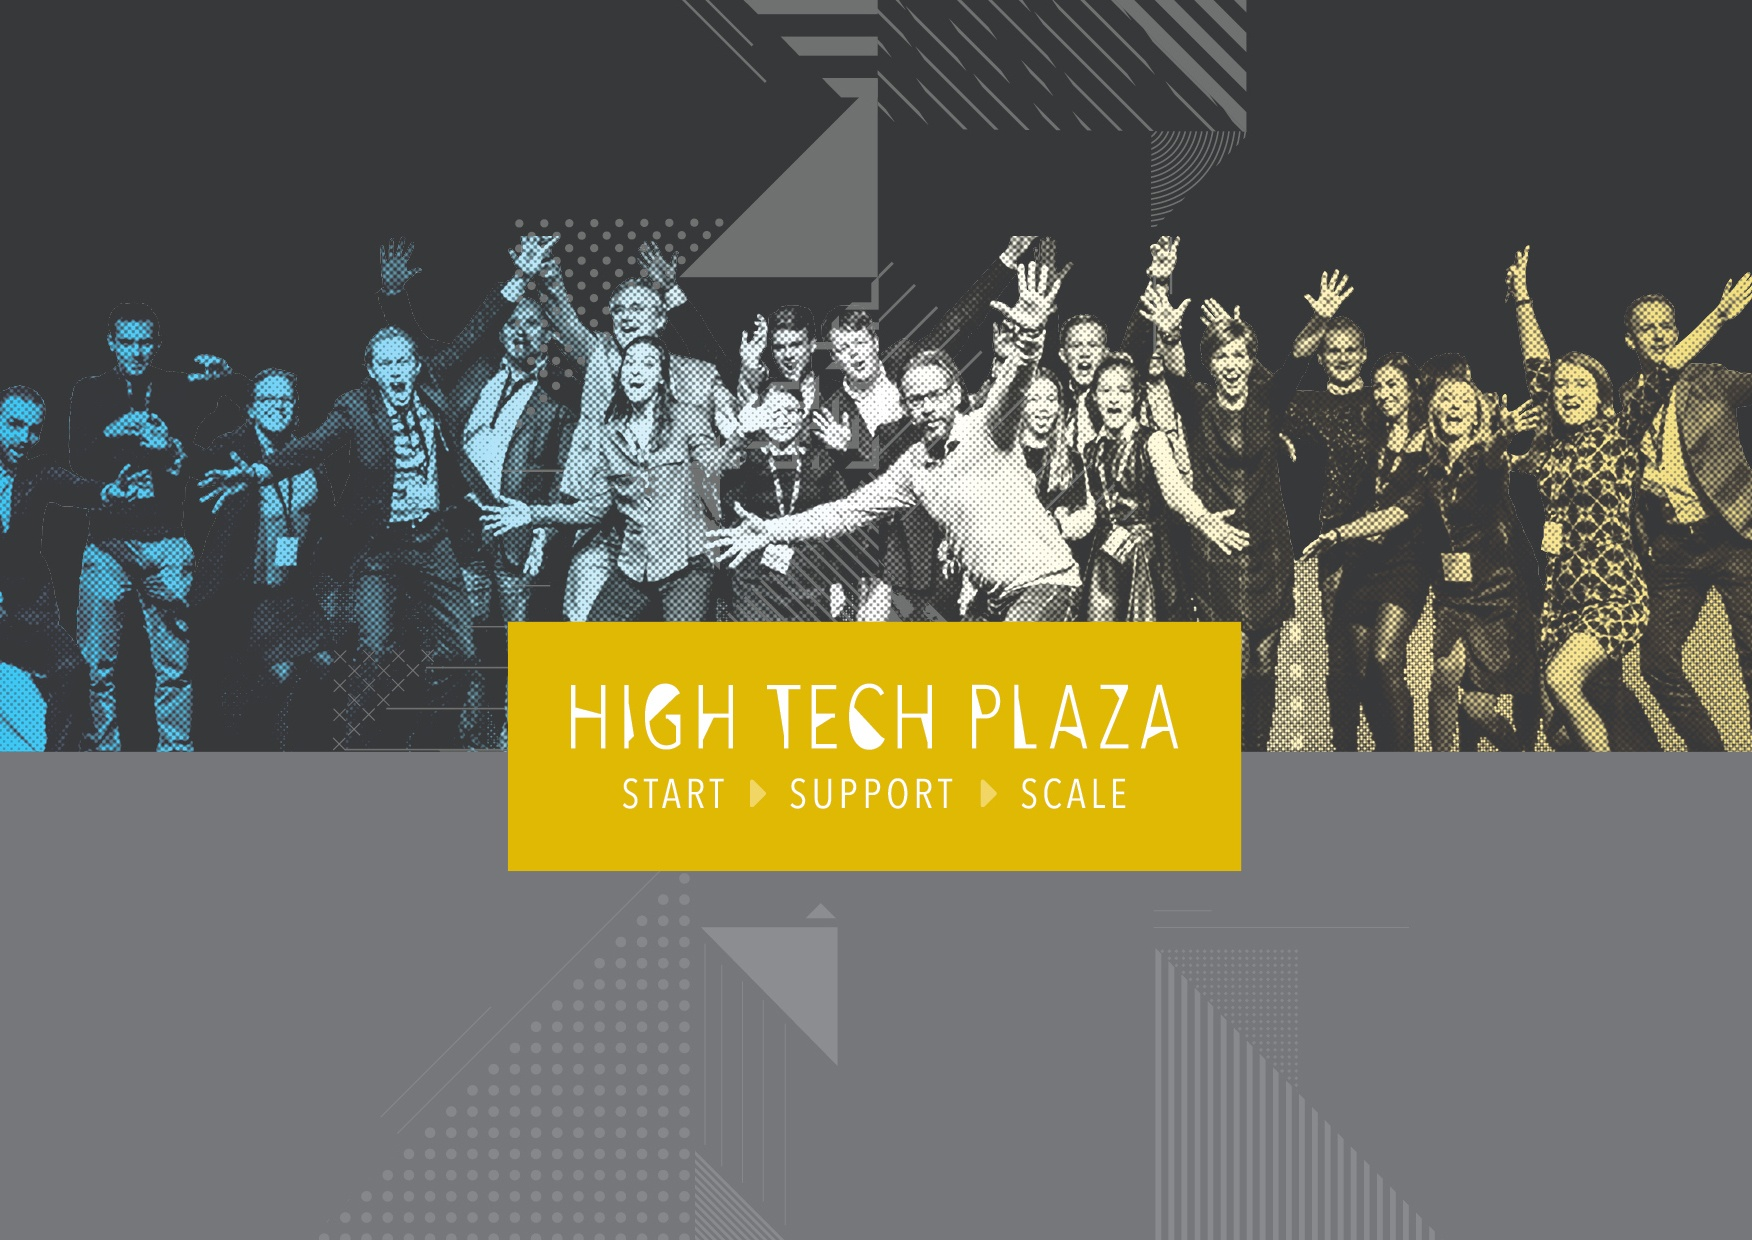 high tech plaza logo header